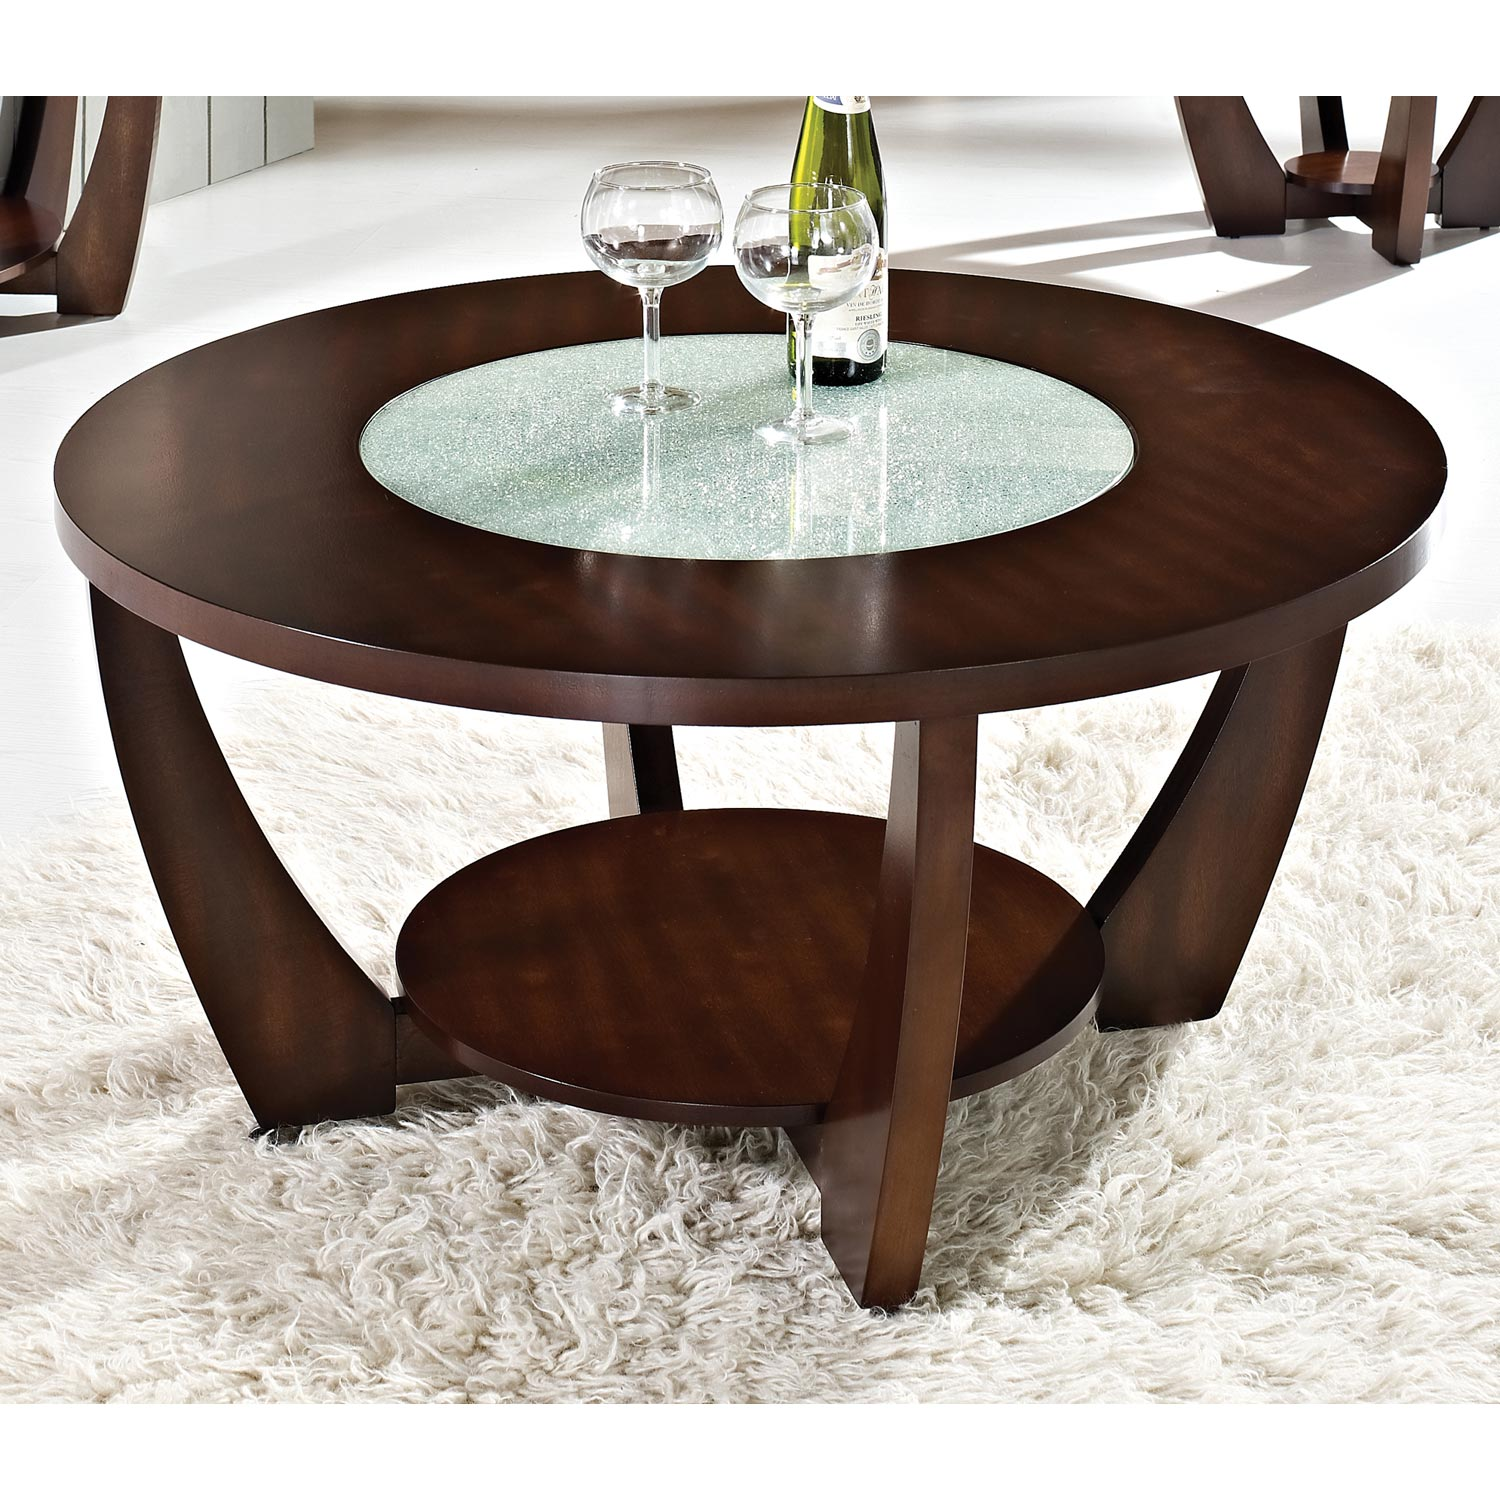 Rafael Round Coffee Table Crackled Glass Dark Cherry Wood